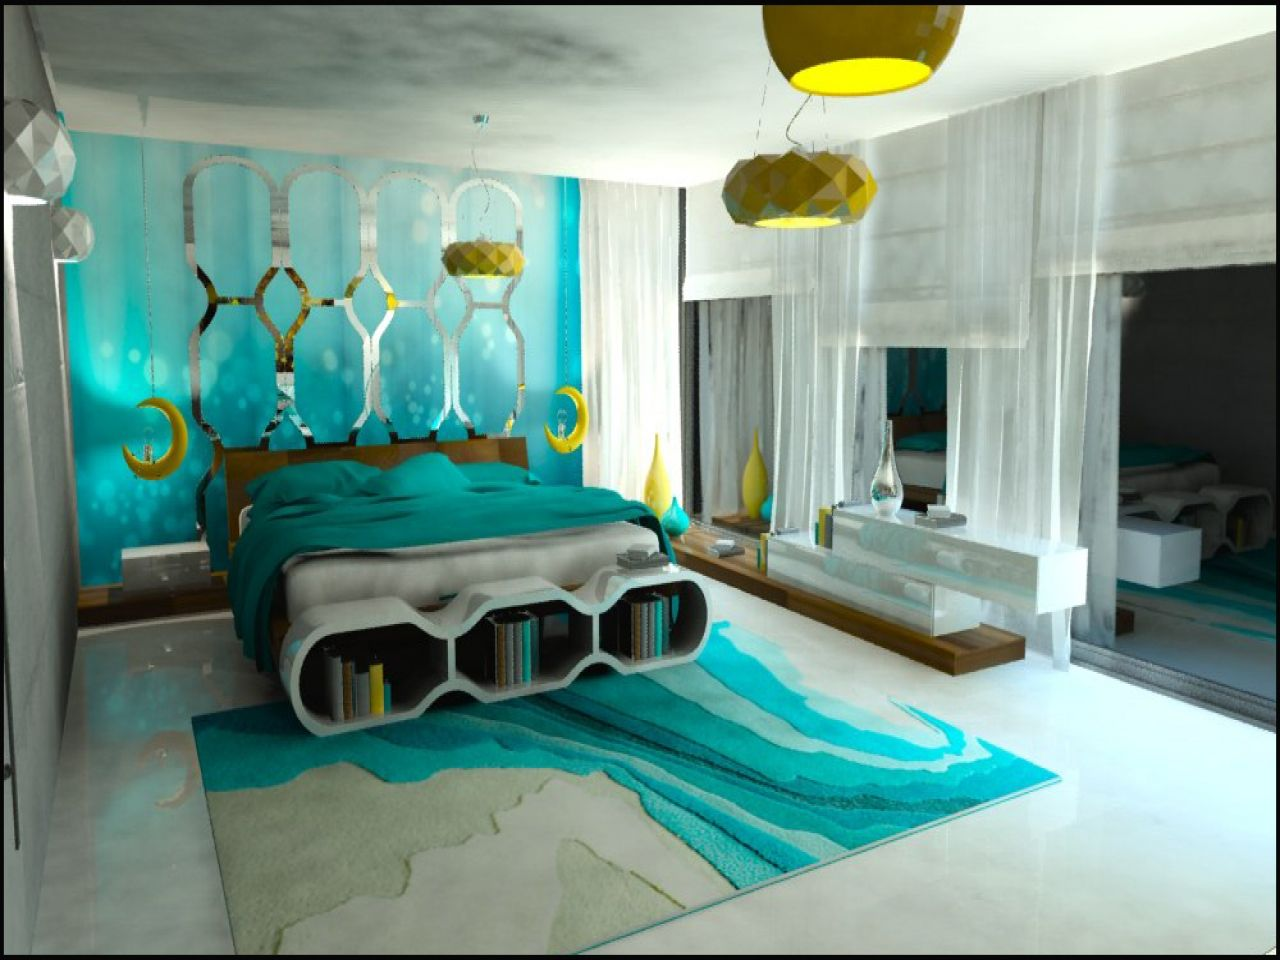 turquoise ideas for more modern design and decor tags ideas turquoise party decorations turquoise decorating ideas turquoise ideas for living room